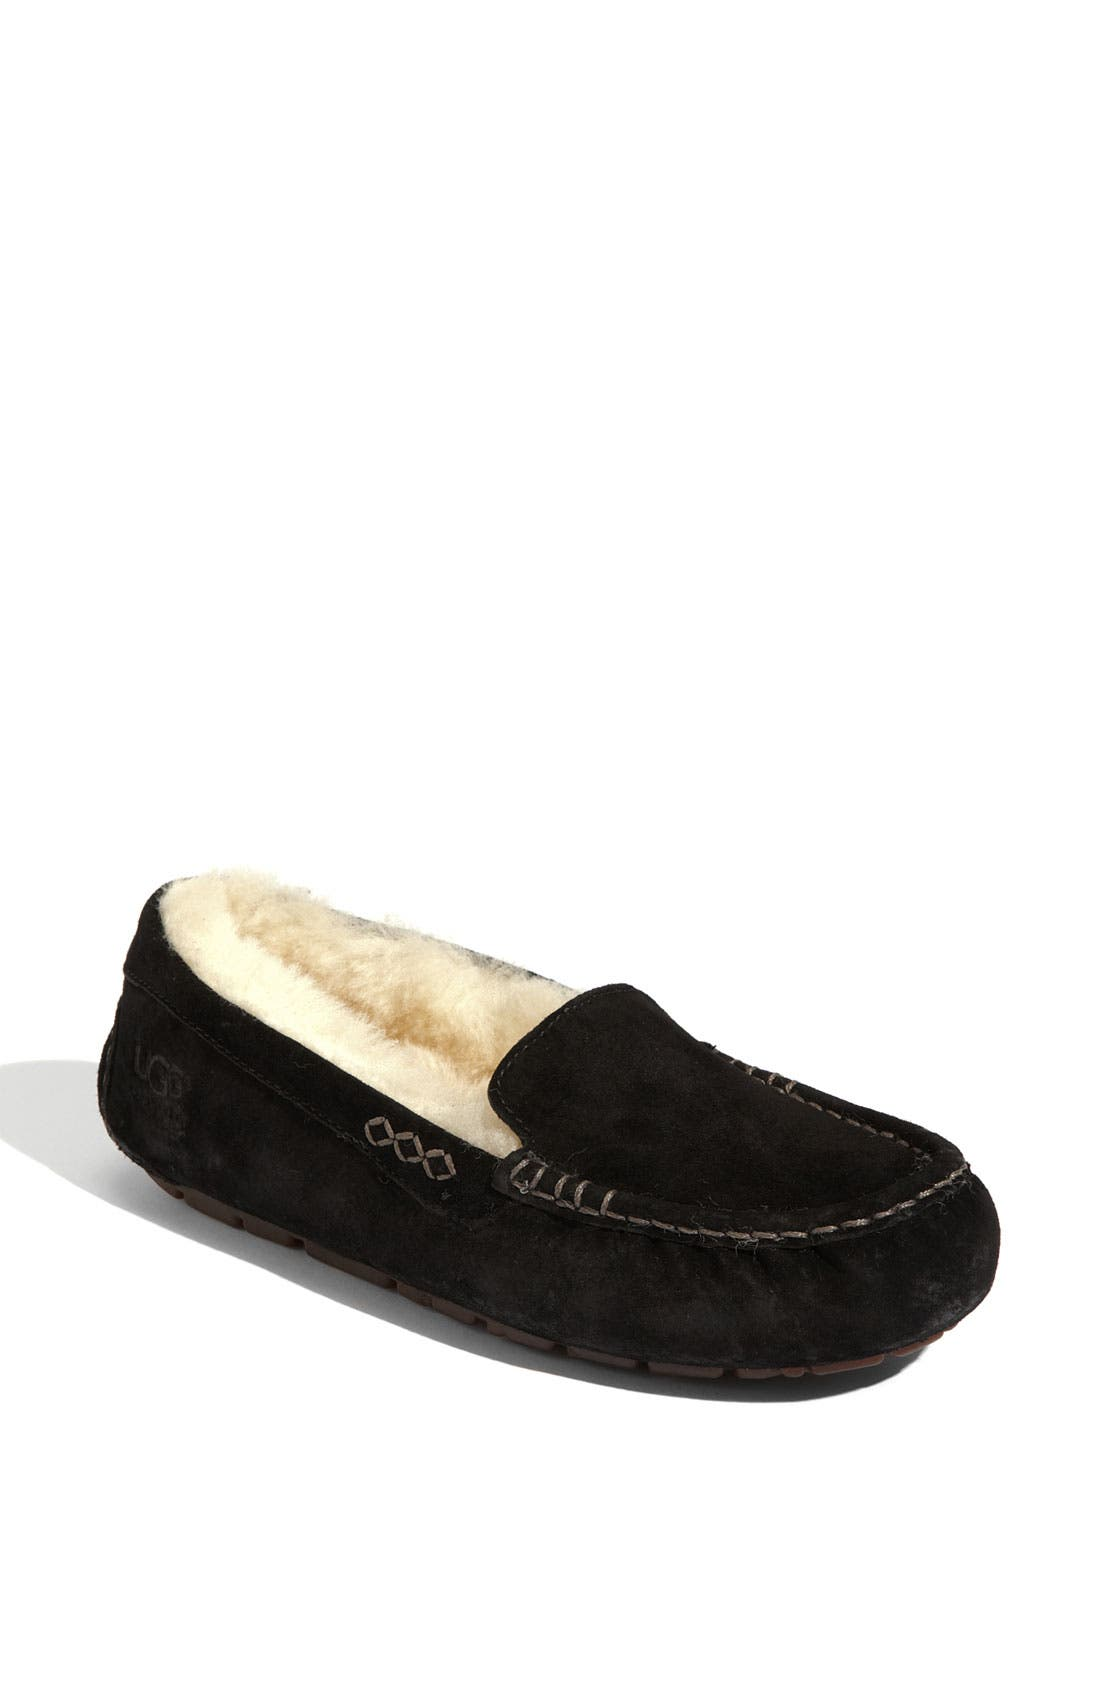 Alternate Image 1 Selected - UGG® Ansley Water Resistant Slipper (Women)